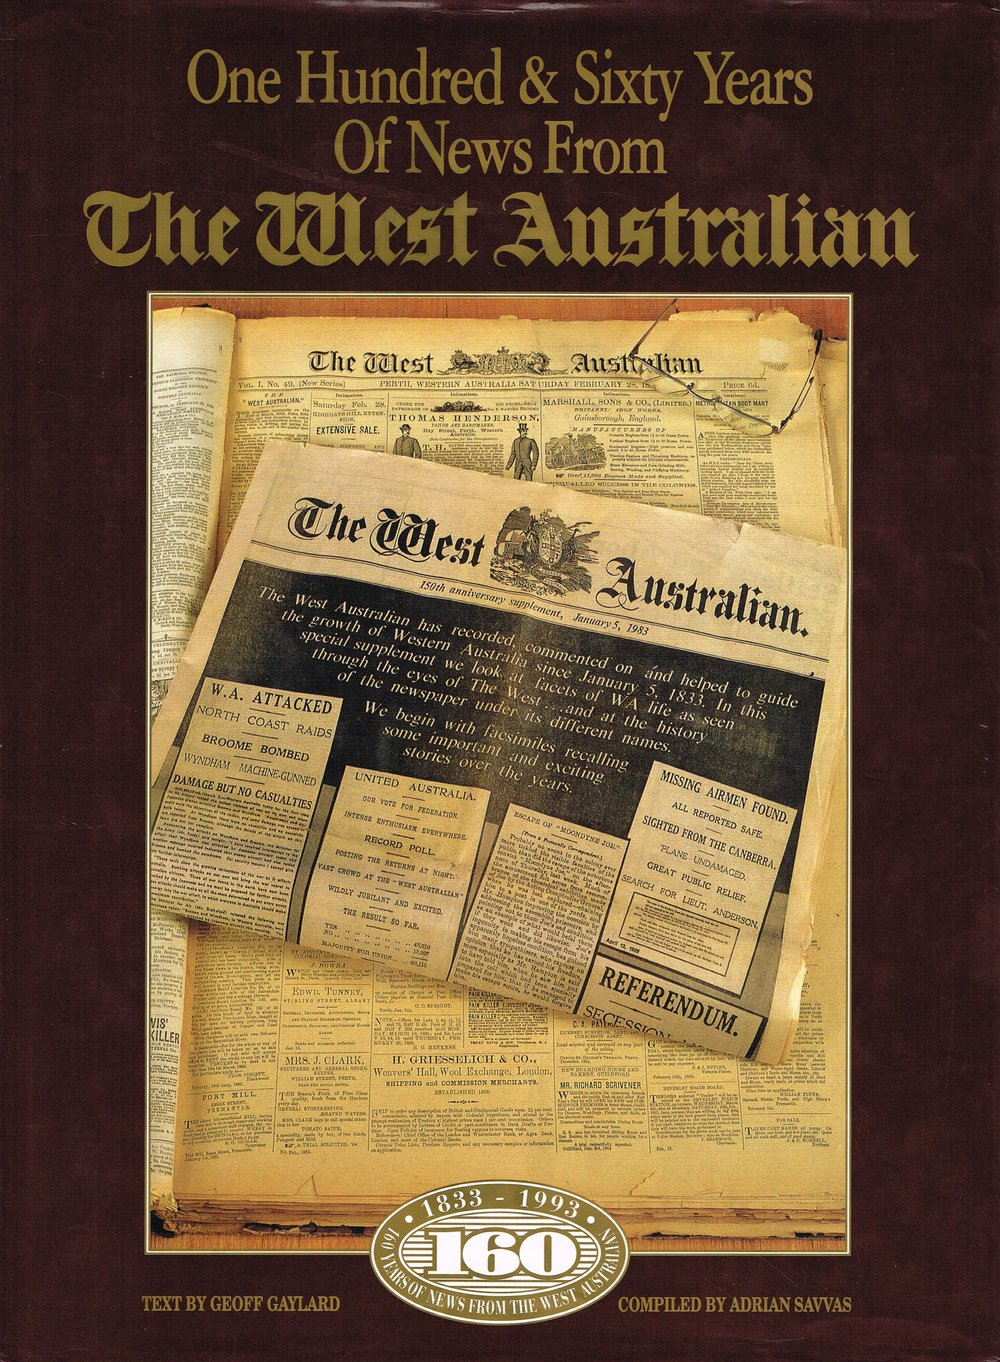 One Hundred & Sixty Years Of News From The West Australian Text by Geoff Gaylard, compiled by Adrian Savvas